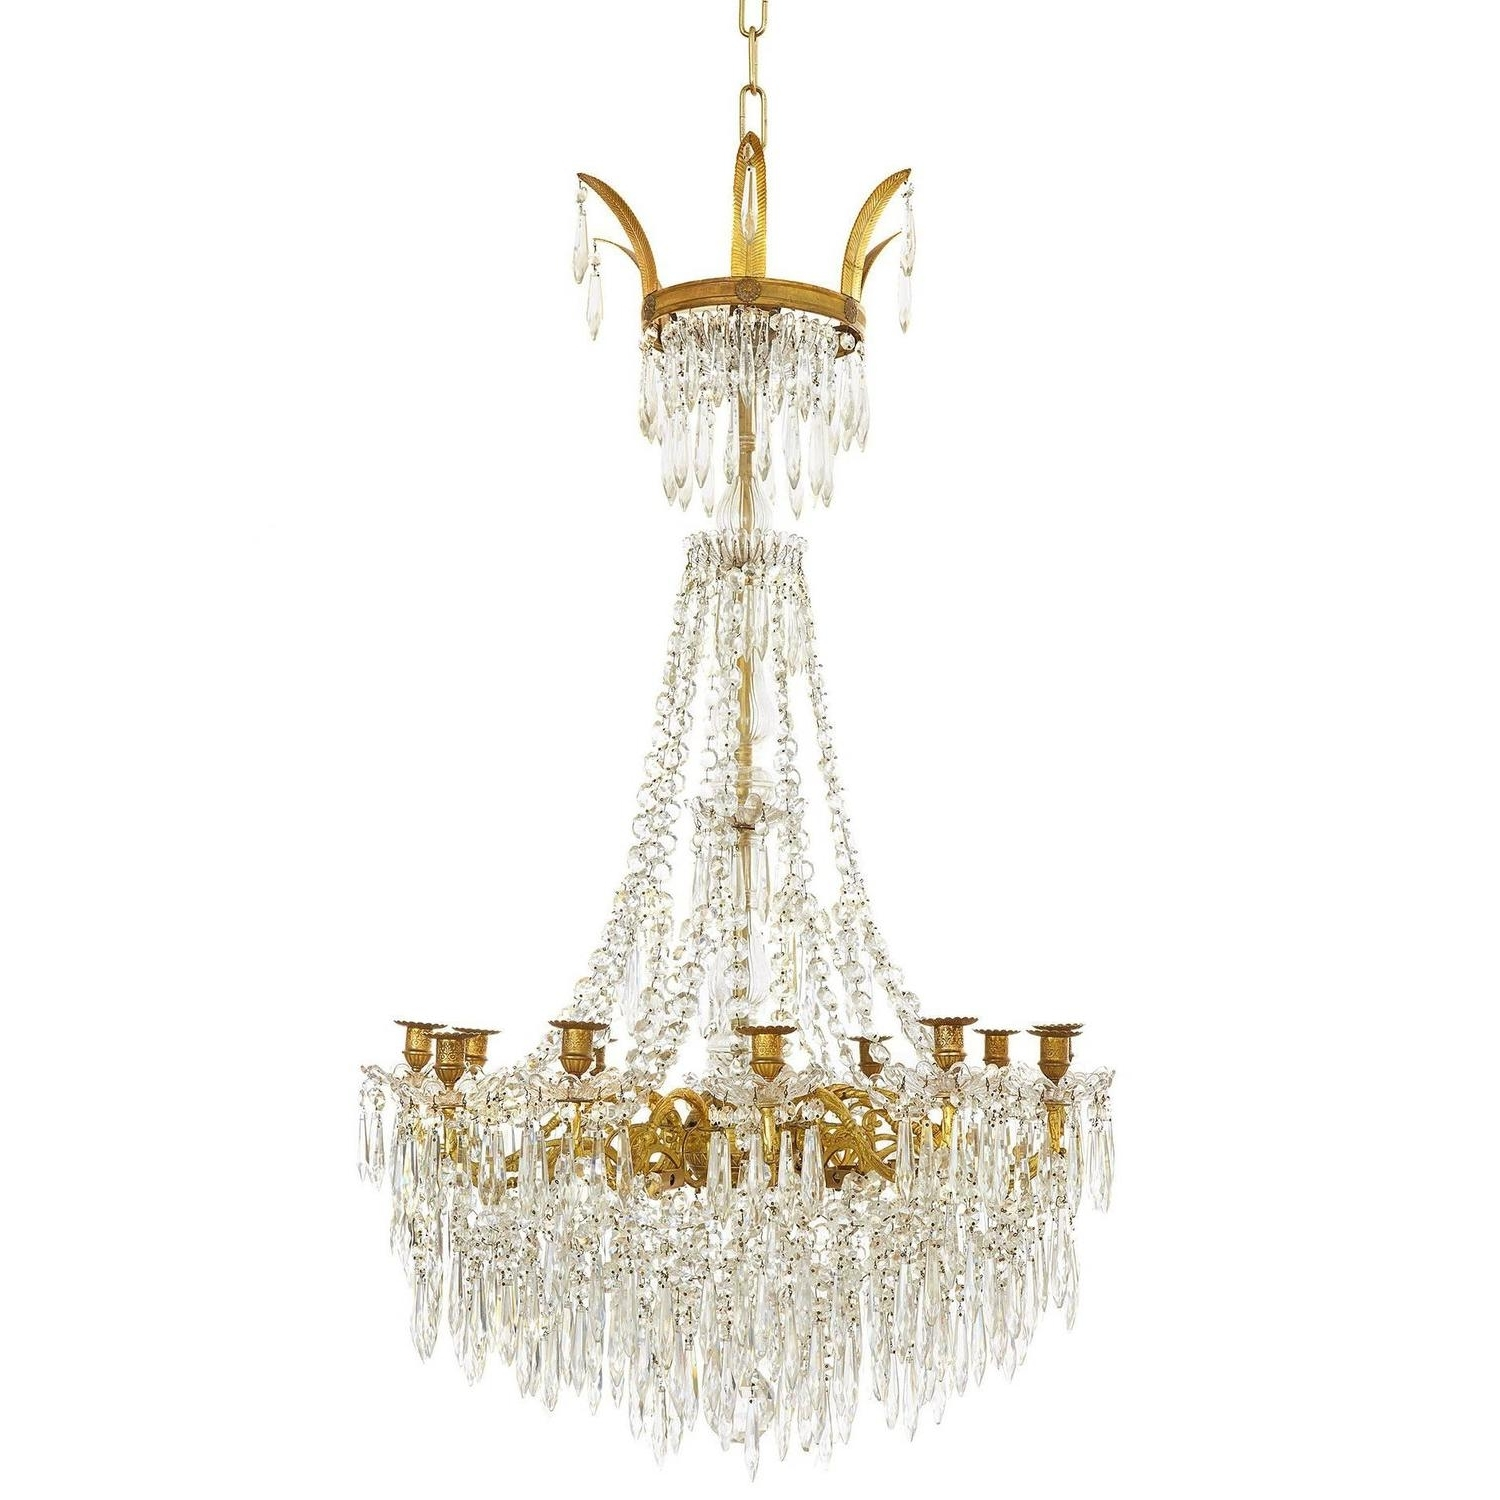 French Chandelier With Regard To Most Recent Large Gilt Bronze And Crystal Antique French Chandelier In The (View 6 of 15)